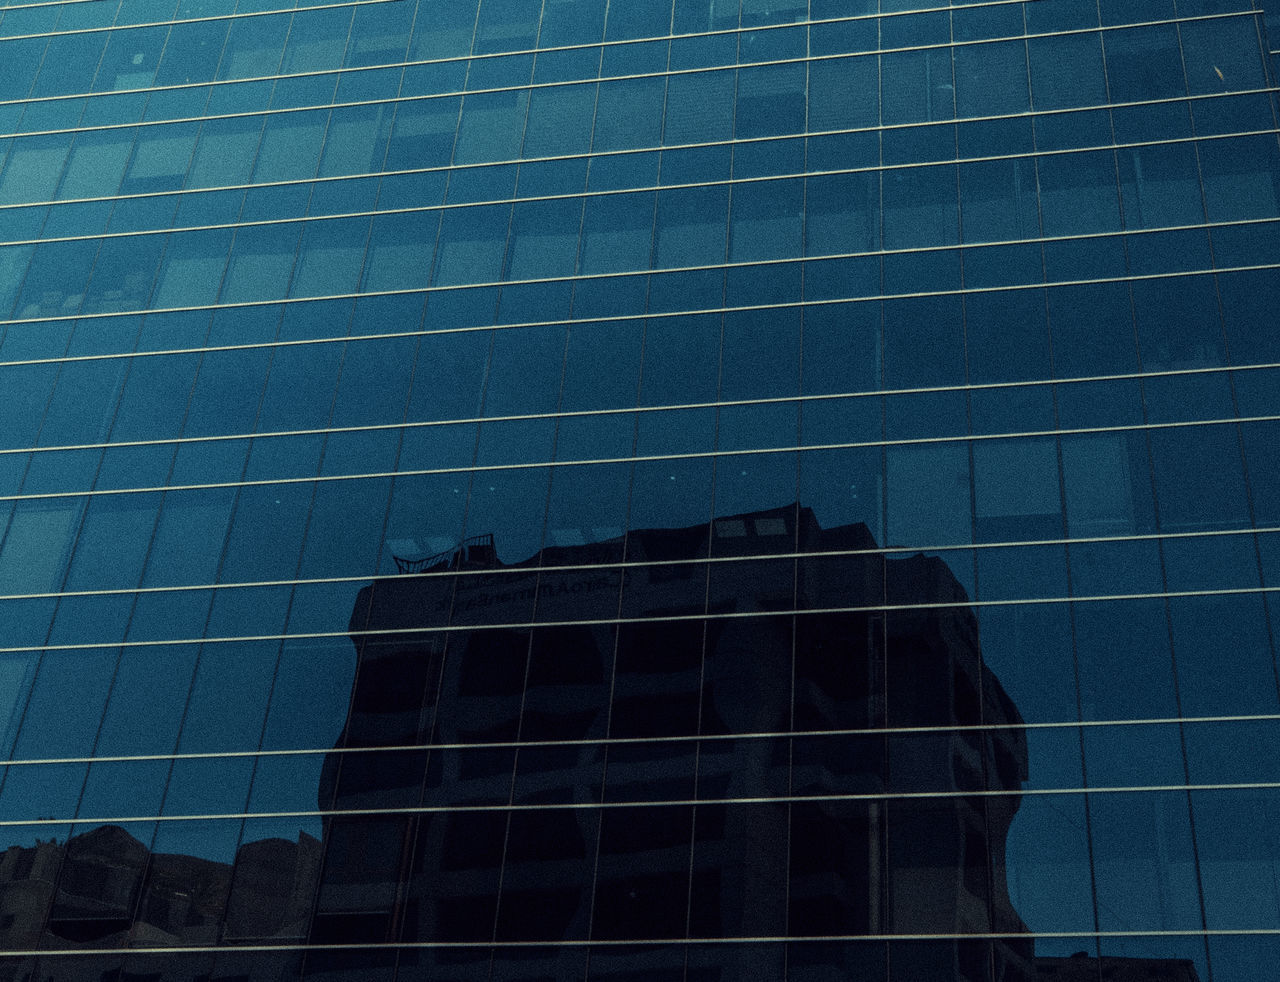 building exterior, built structure, architecture, glass - material, building, city, low angle view, reflection, modern, office building exterior, office, window, no people, sky, nature, outdoors, day, pattern, skyscraper, clear sky